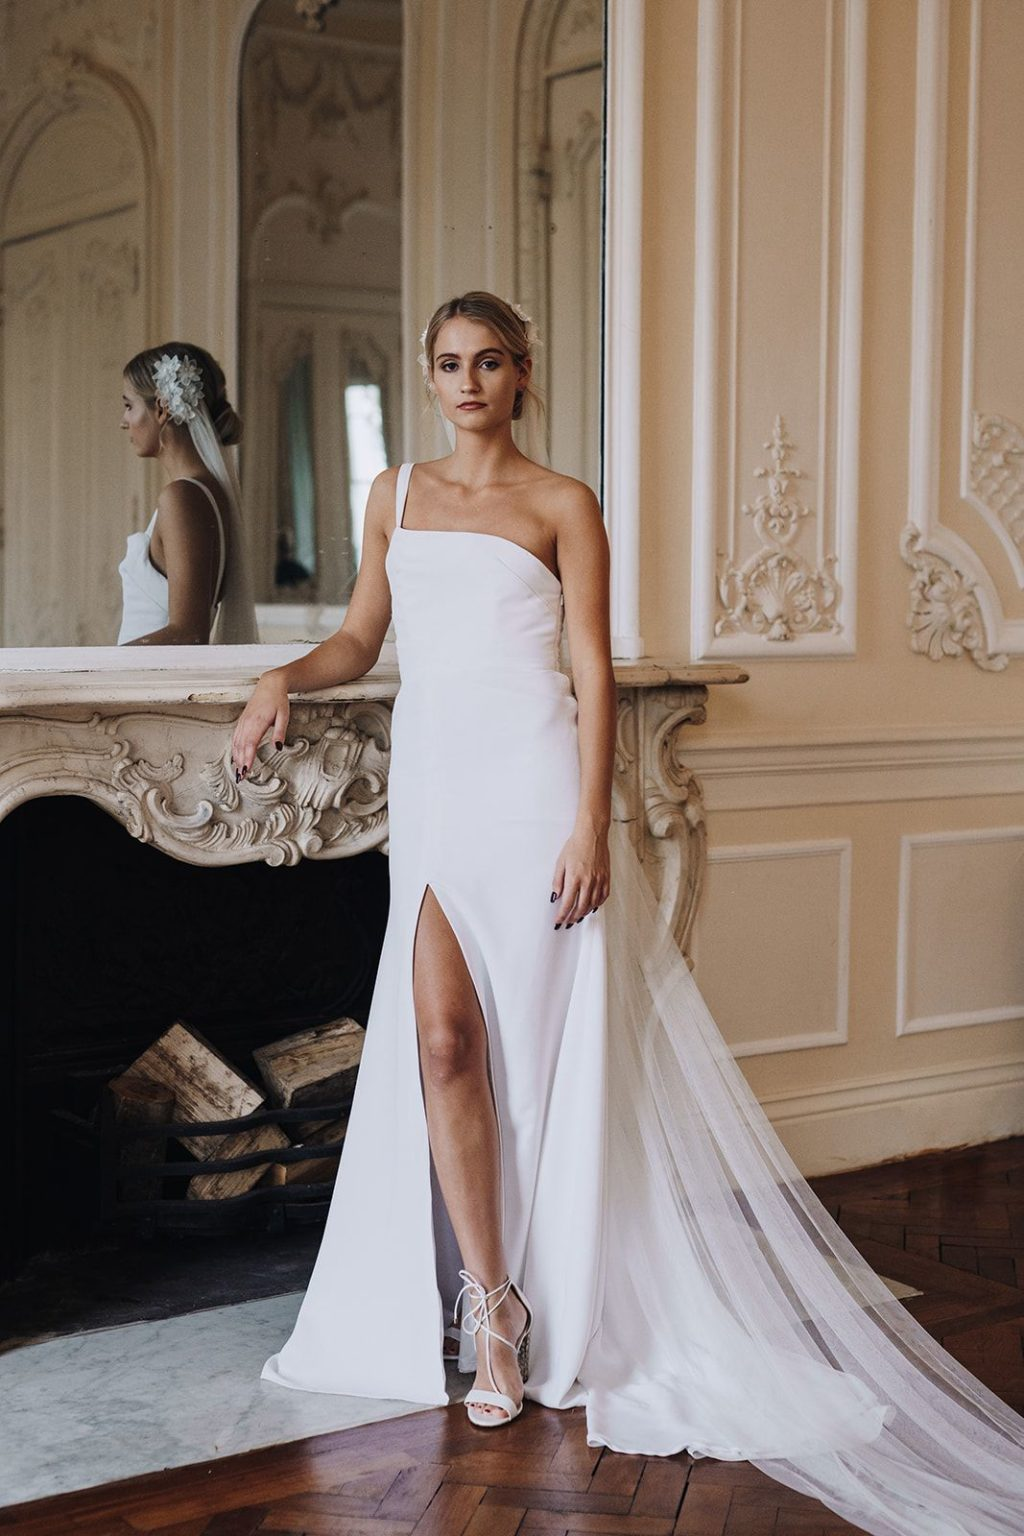 2021 Bridal Trends; Top 5 New Year Trends With Wedding Dress Designer Kate Edmonson